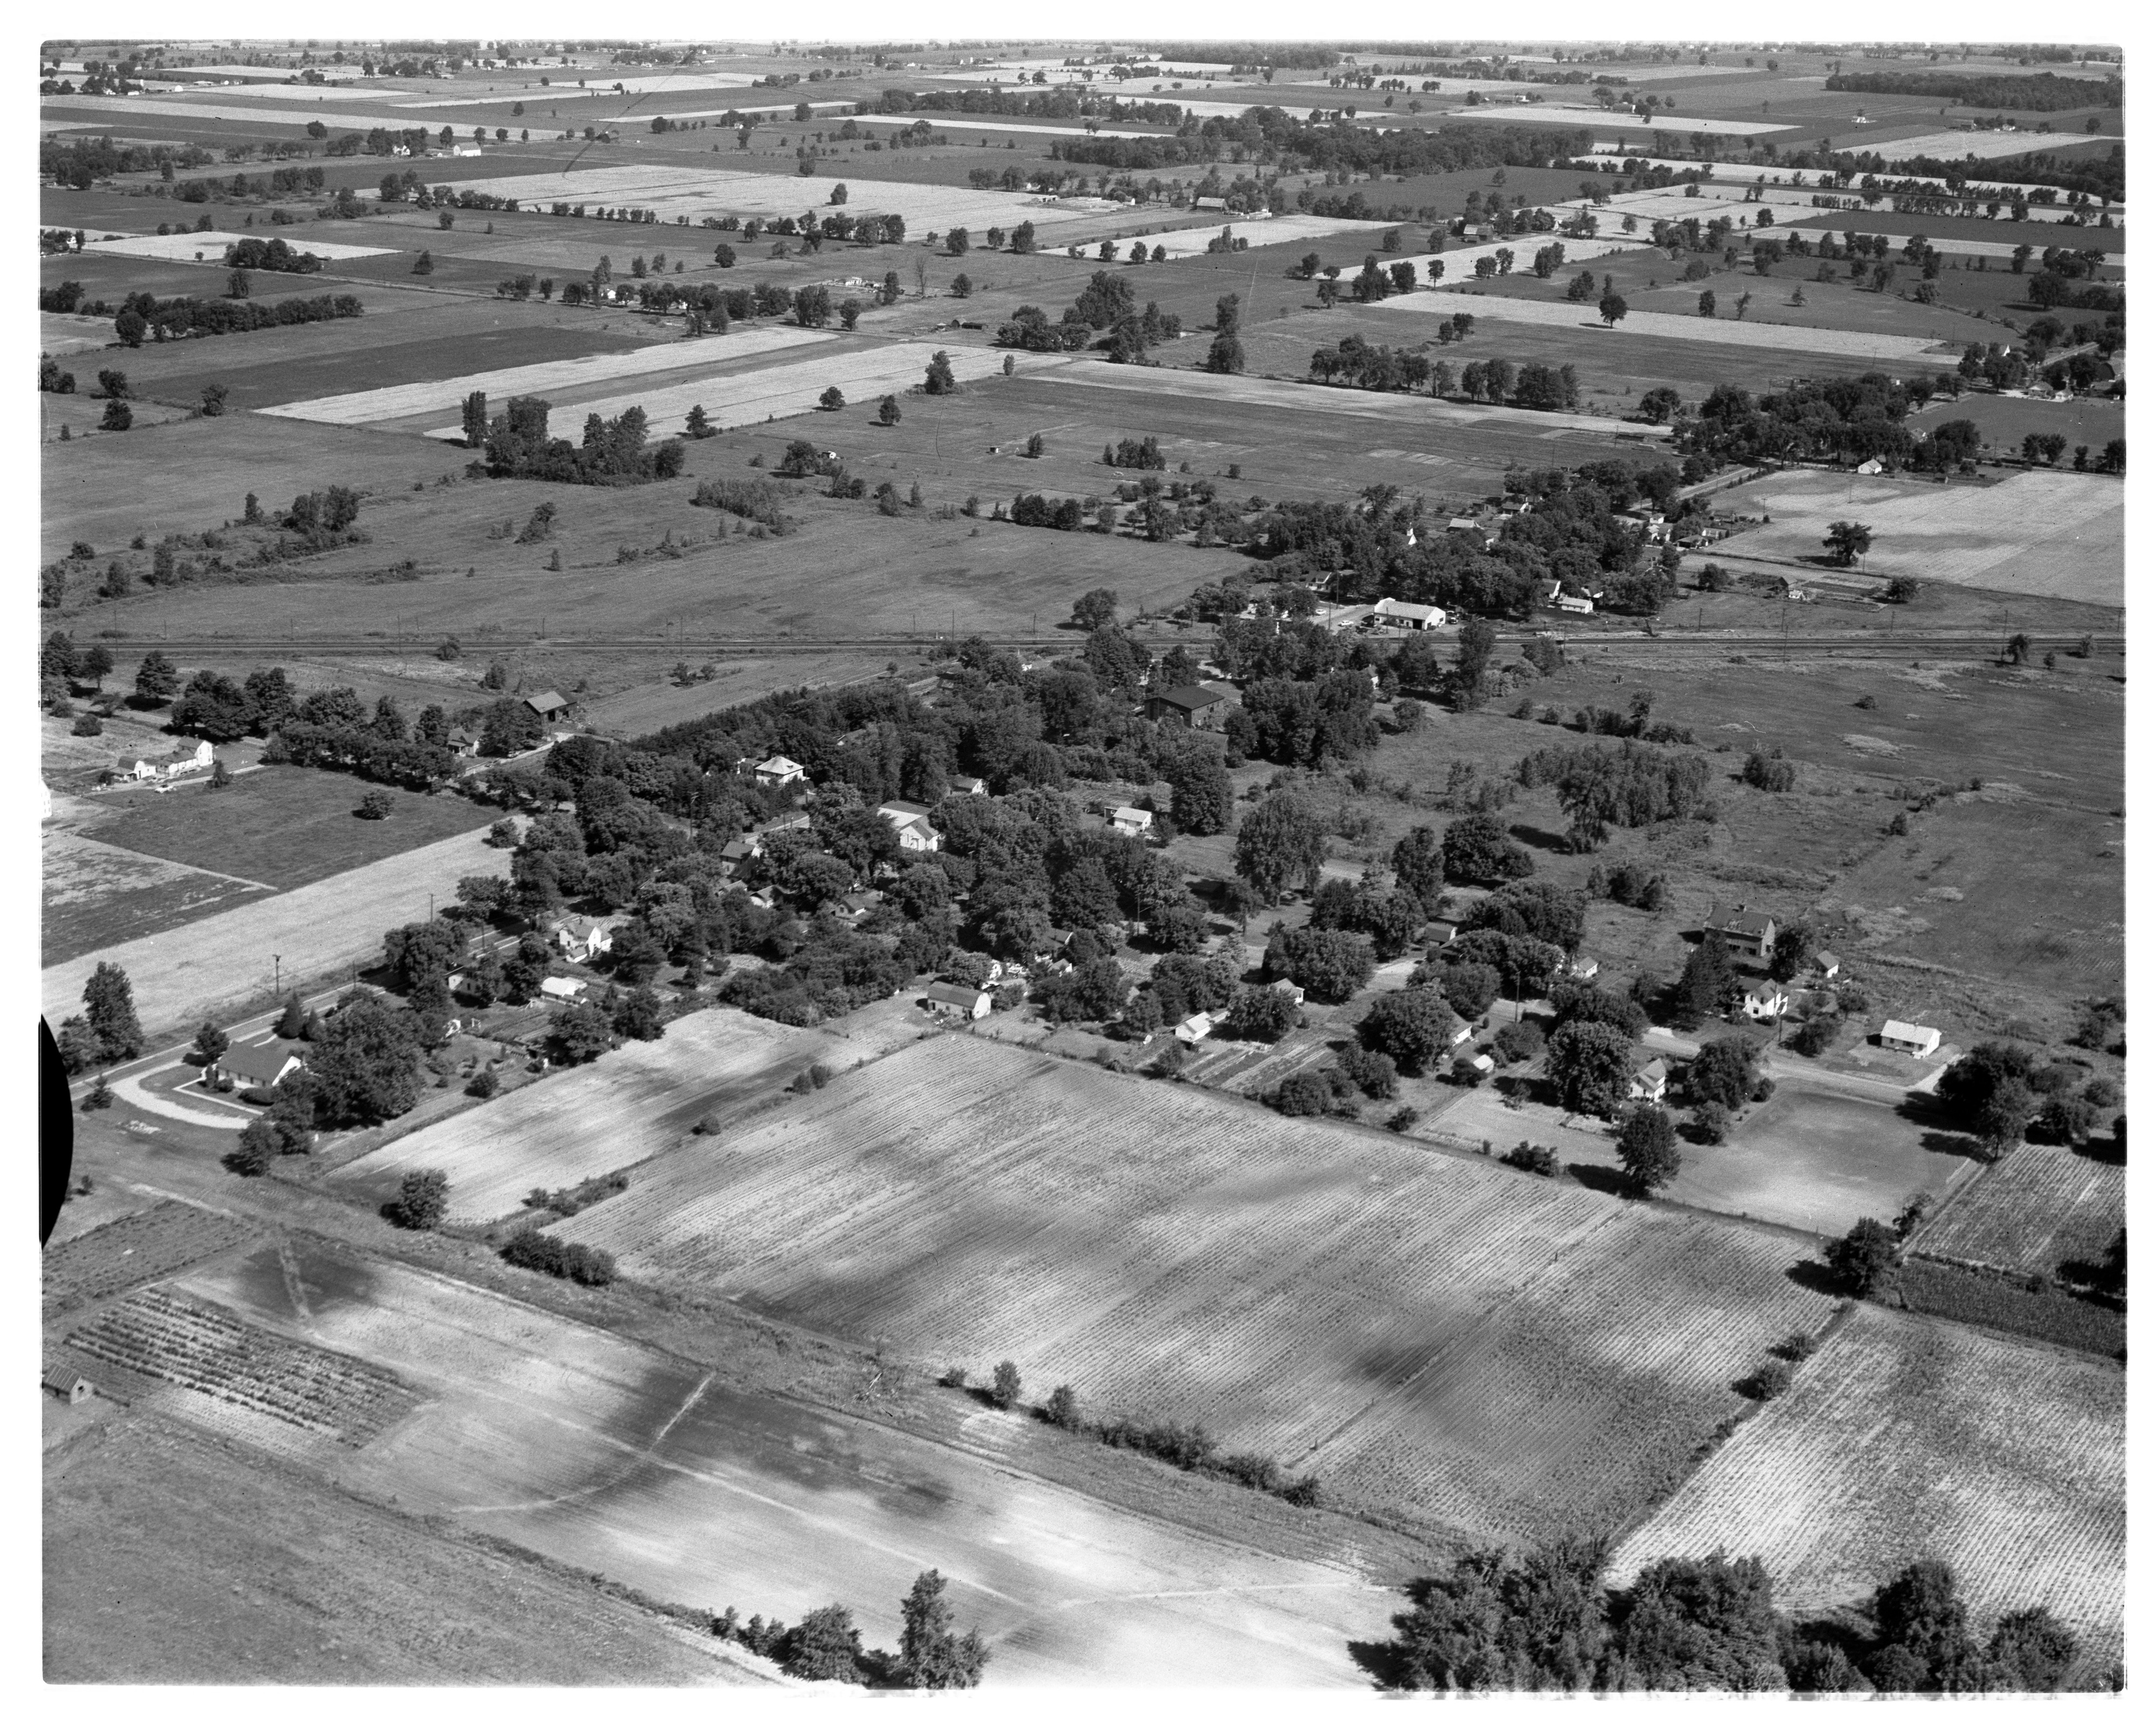 Aerial Photograph of the Village of Whittaker, July 1956 image